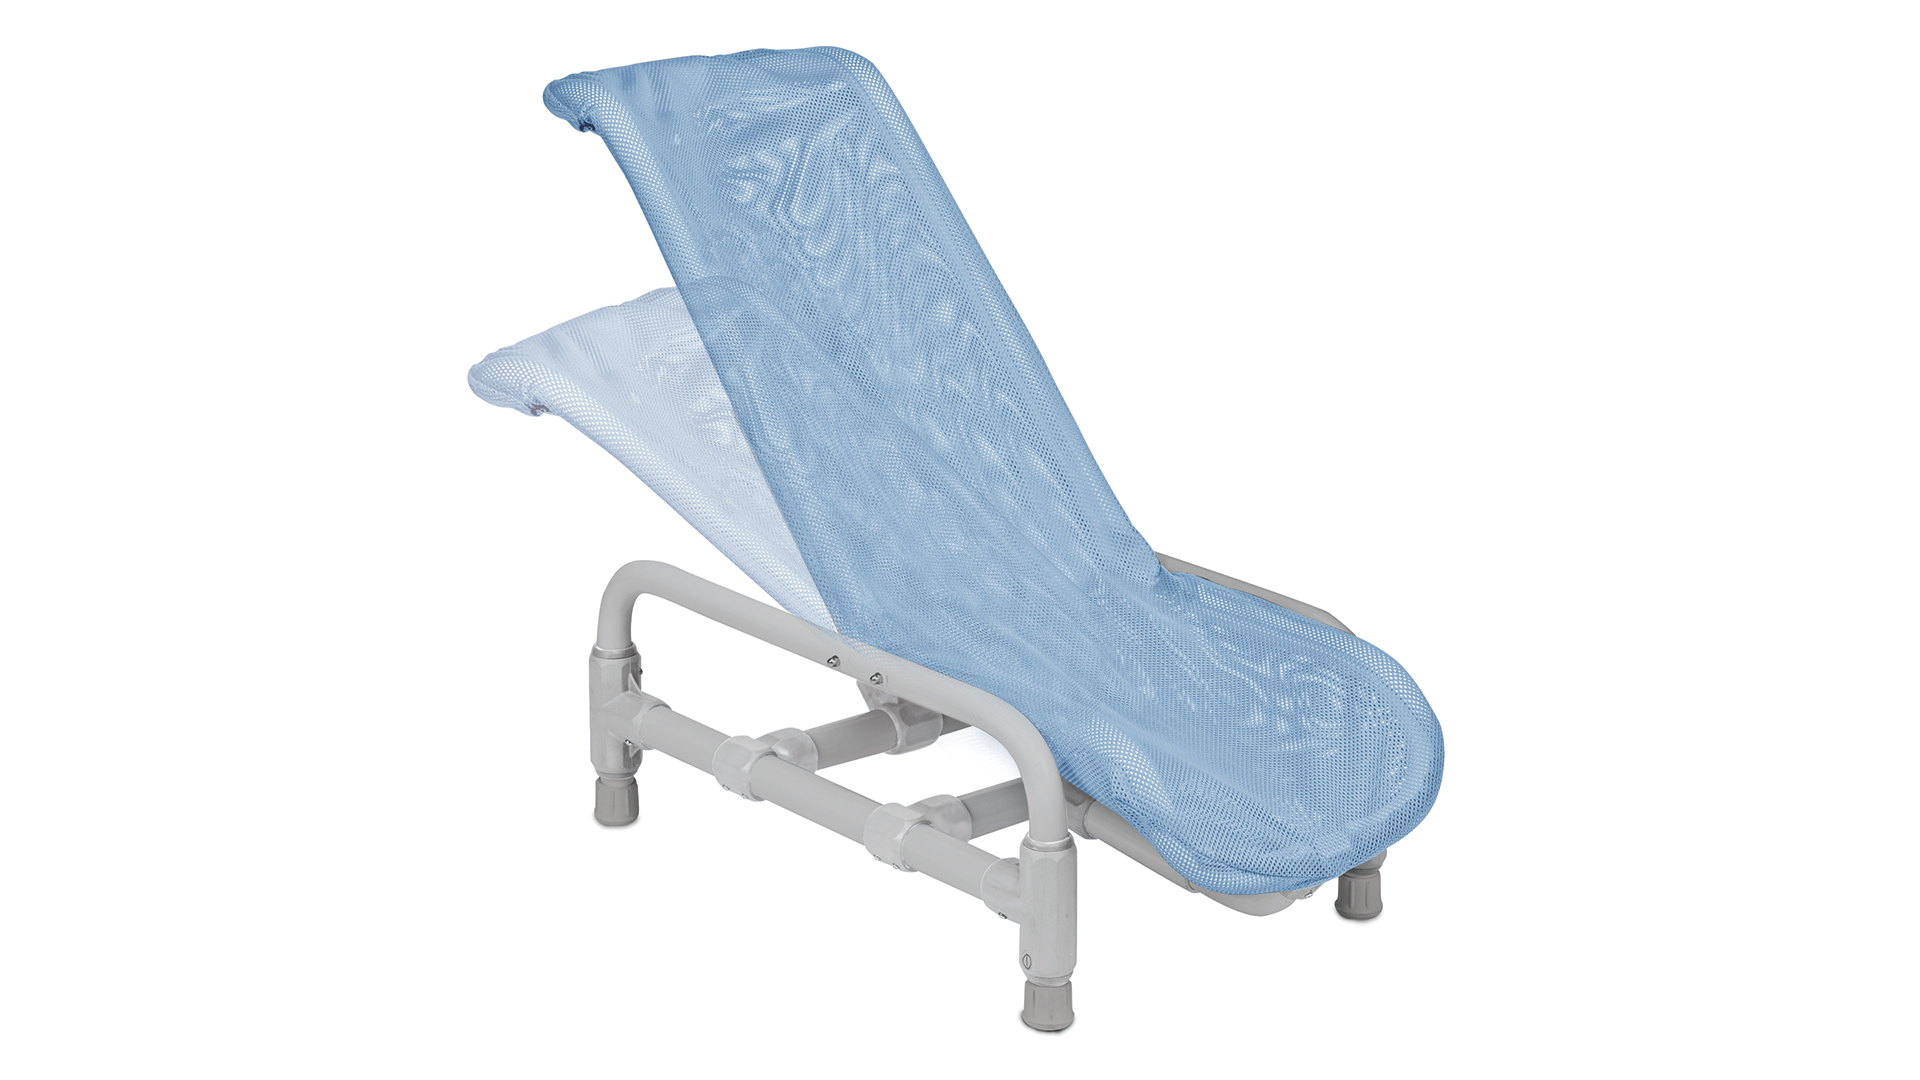 Contour™ Deluxe Bath Chair - Inspired by Drive